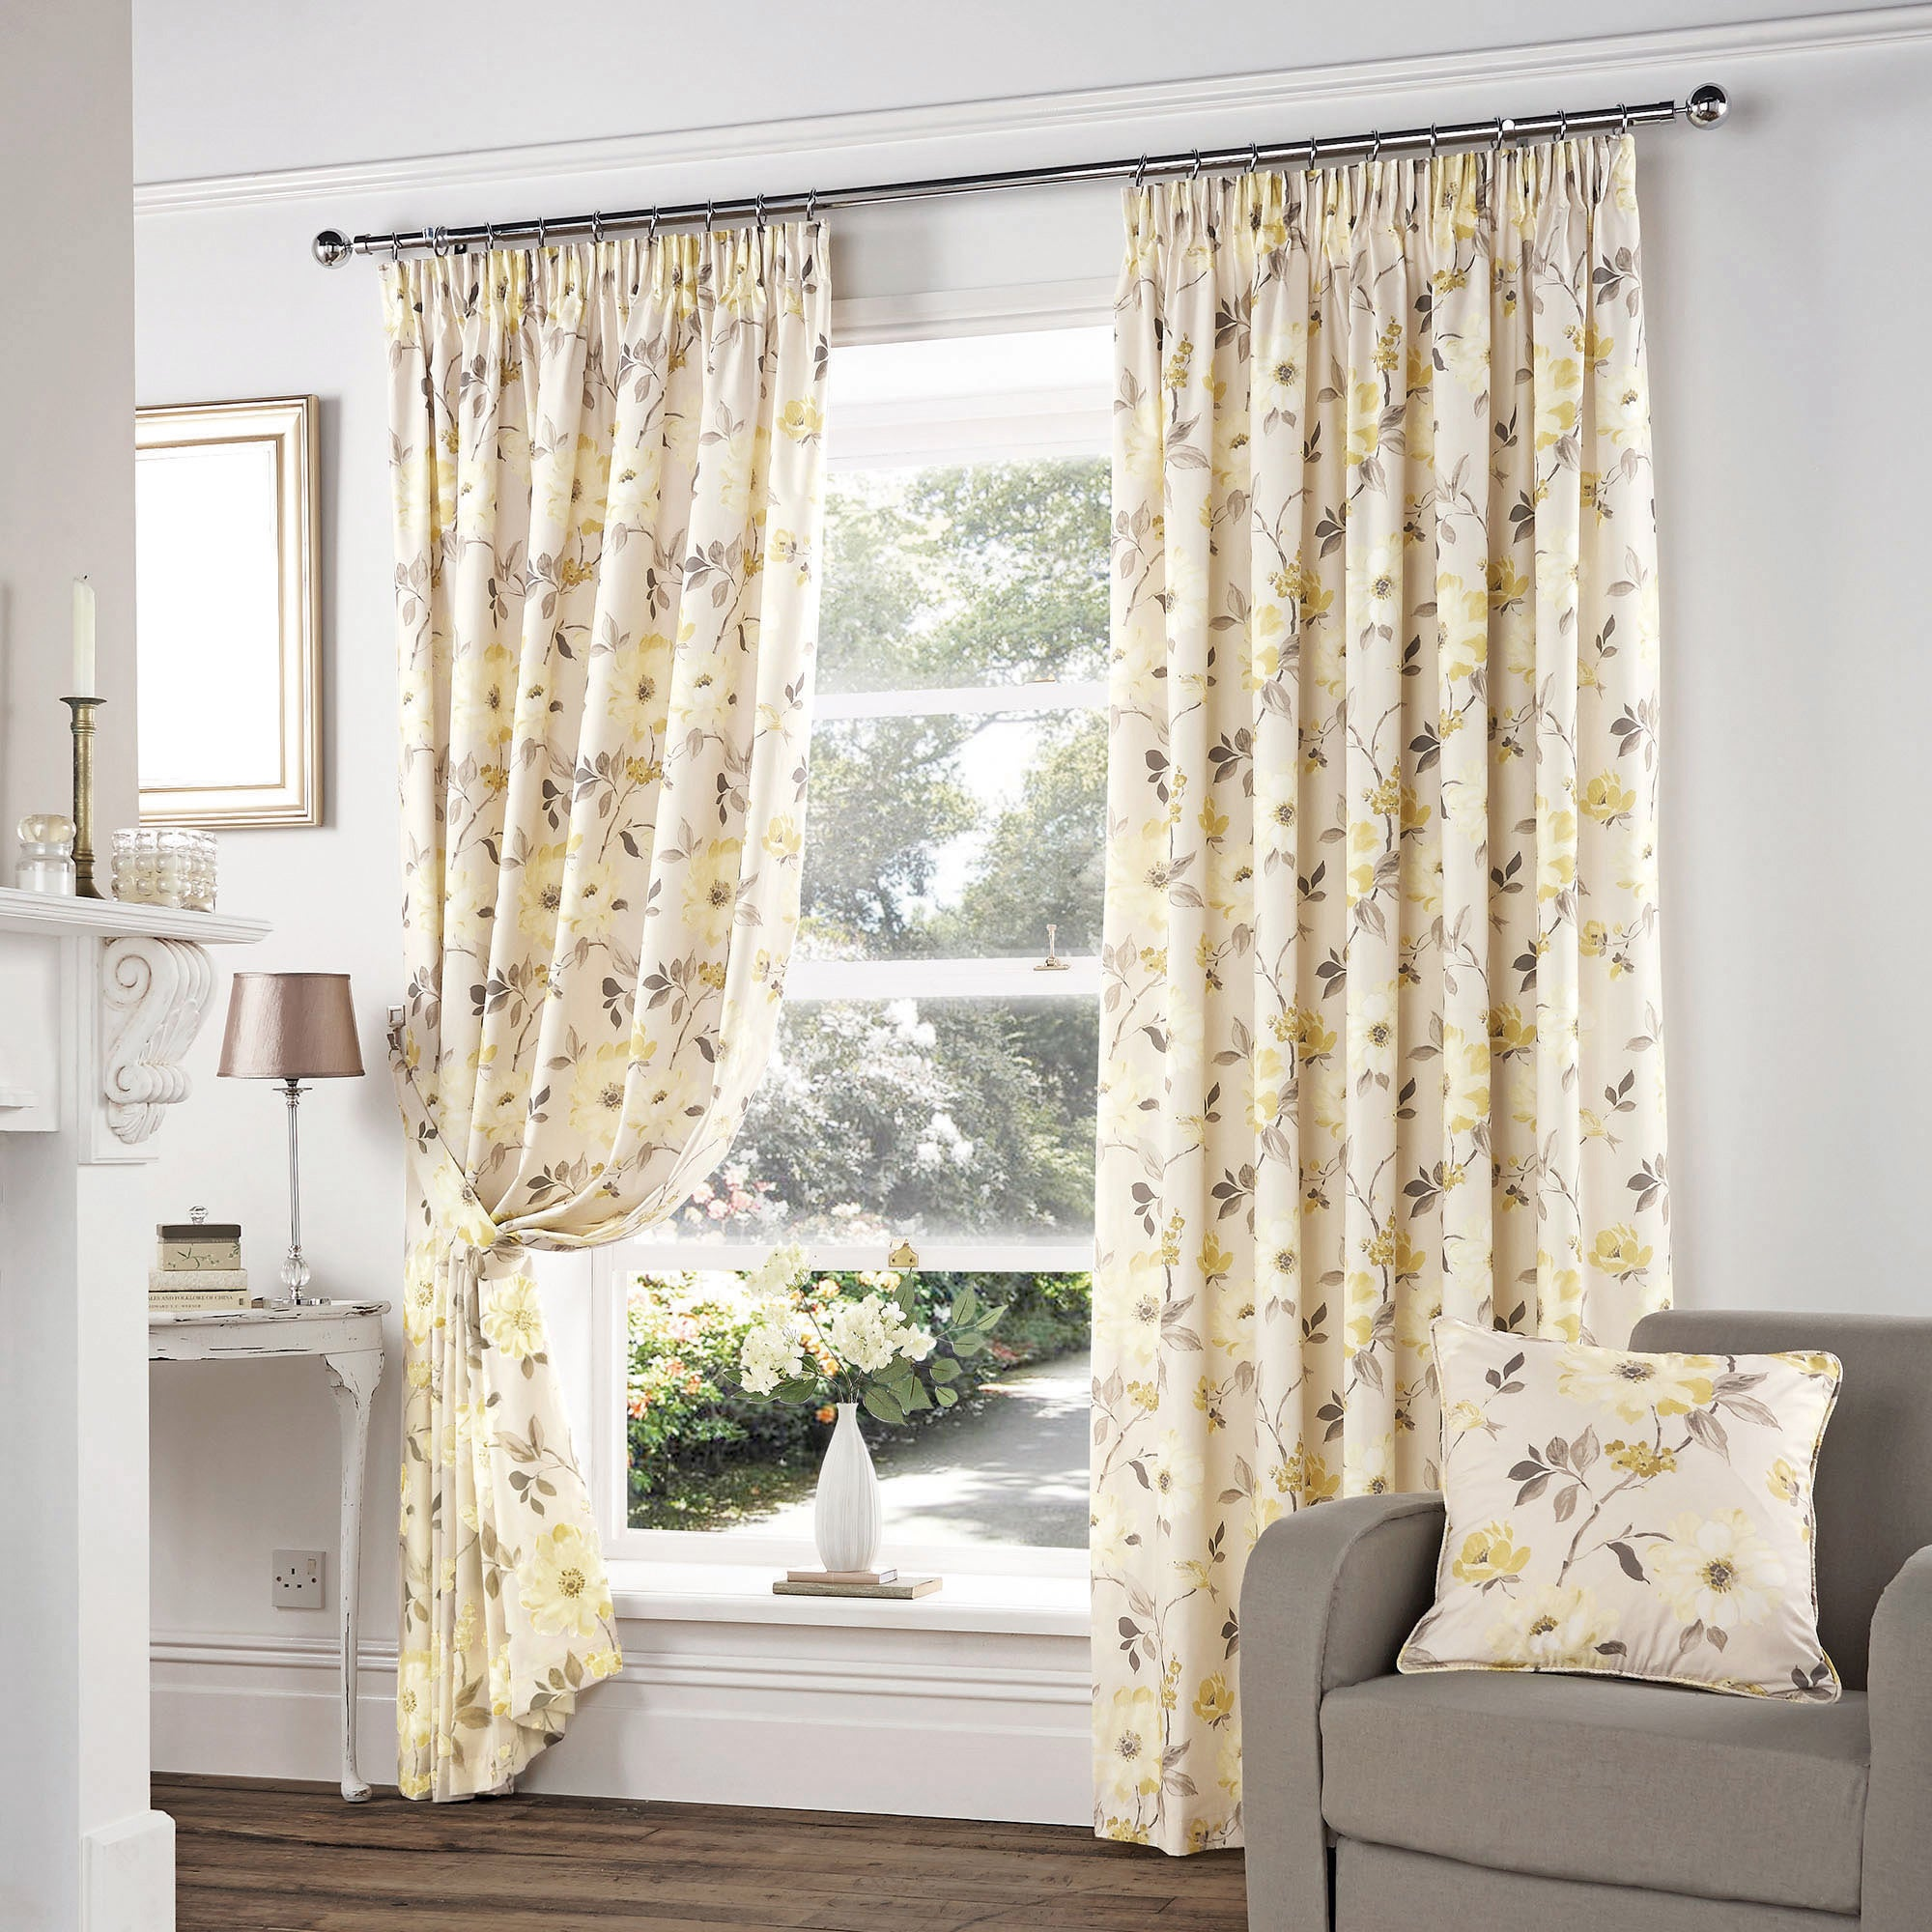 Image Result For The Range Childrens Curtains